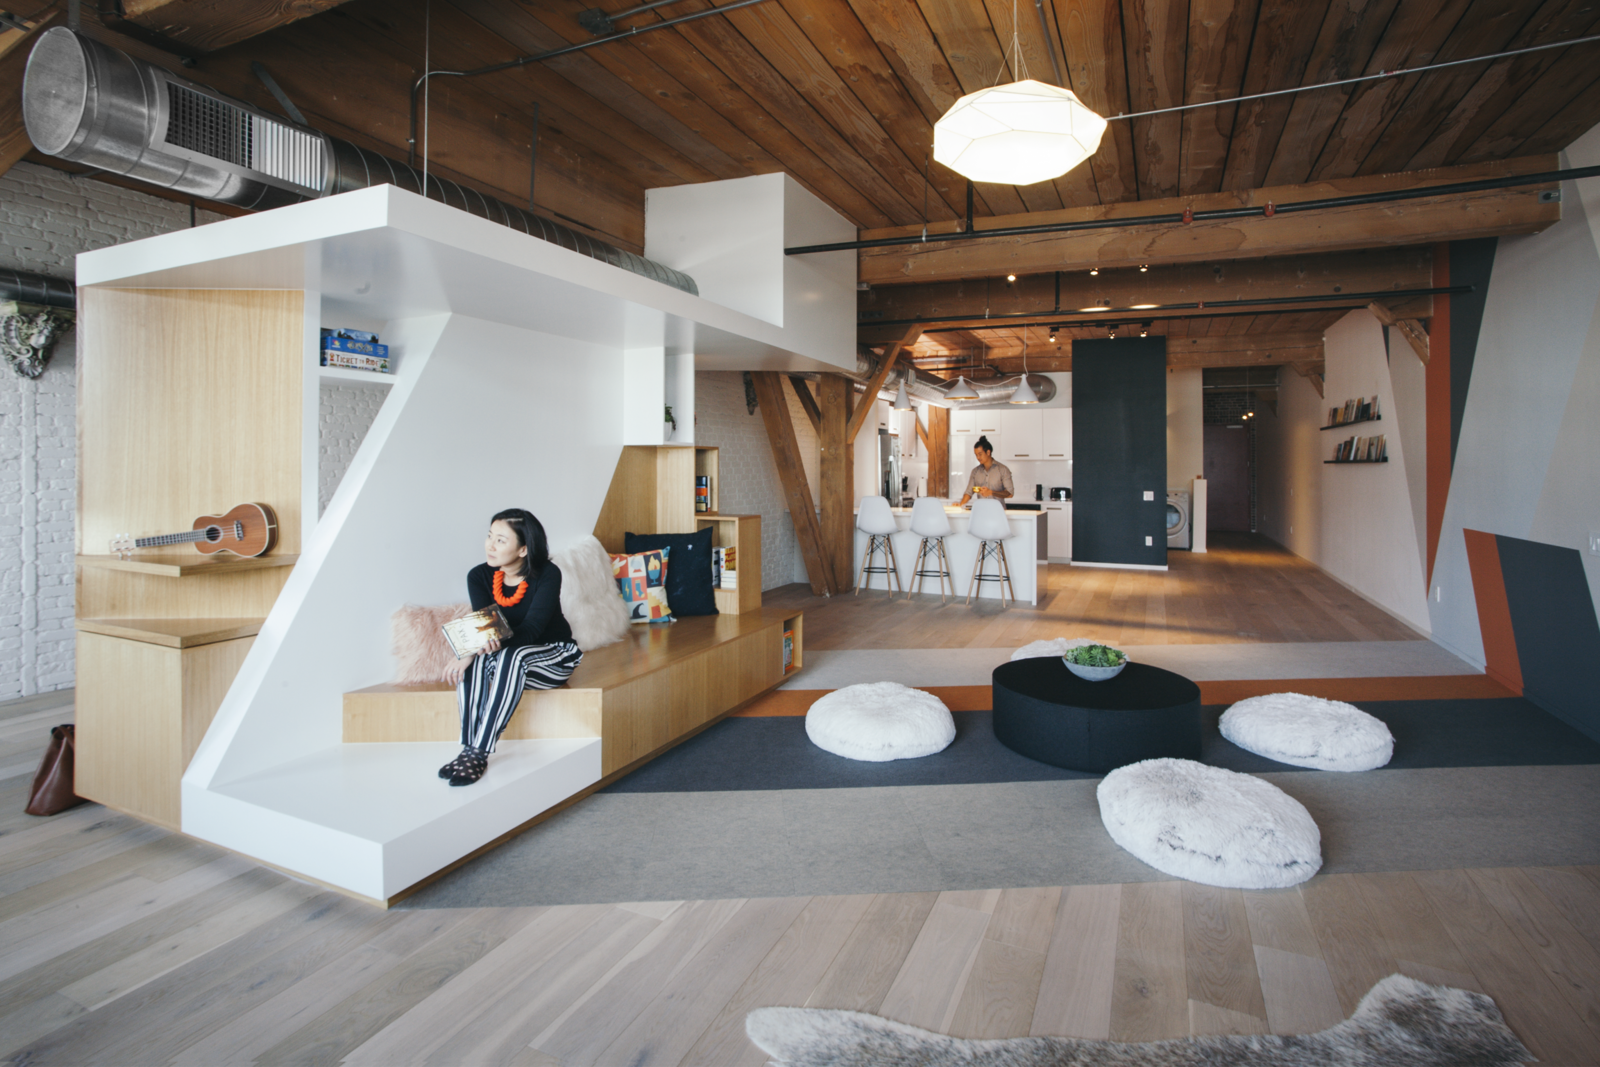 8 Live/Work Spaces We'd Move Into in a Heartbeat – OBSiGeN